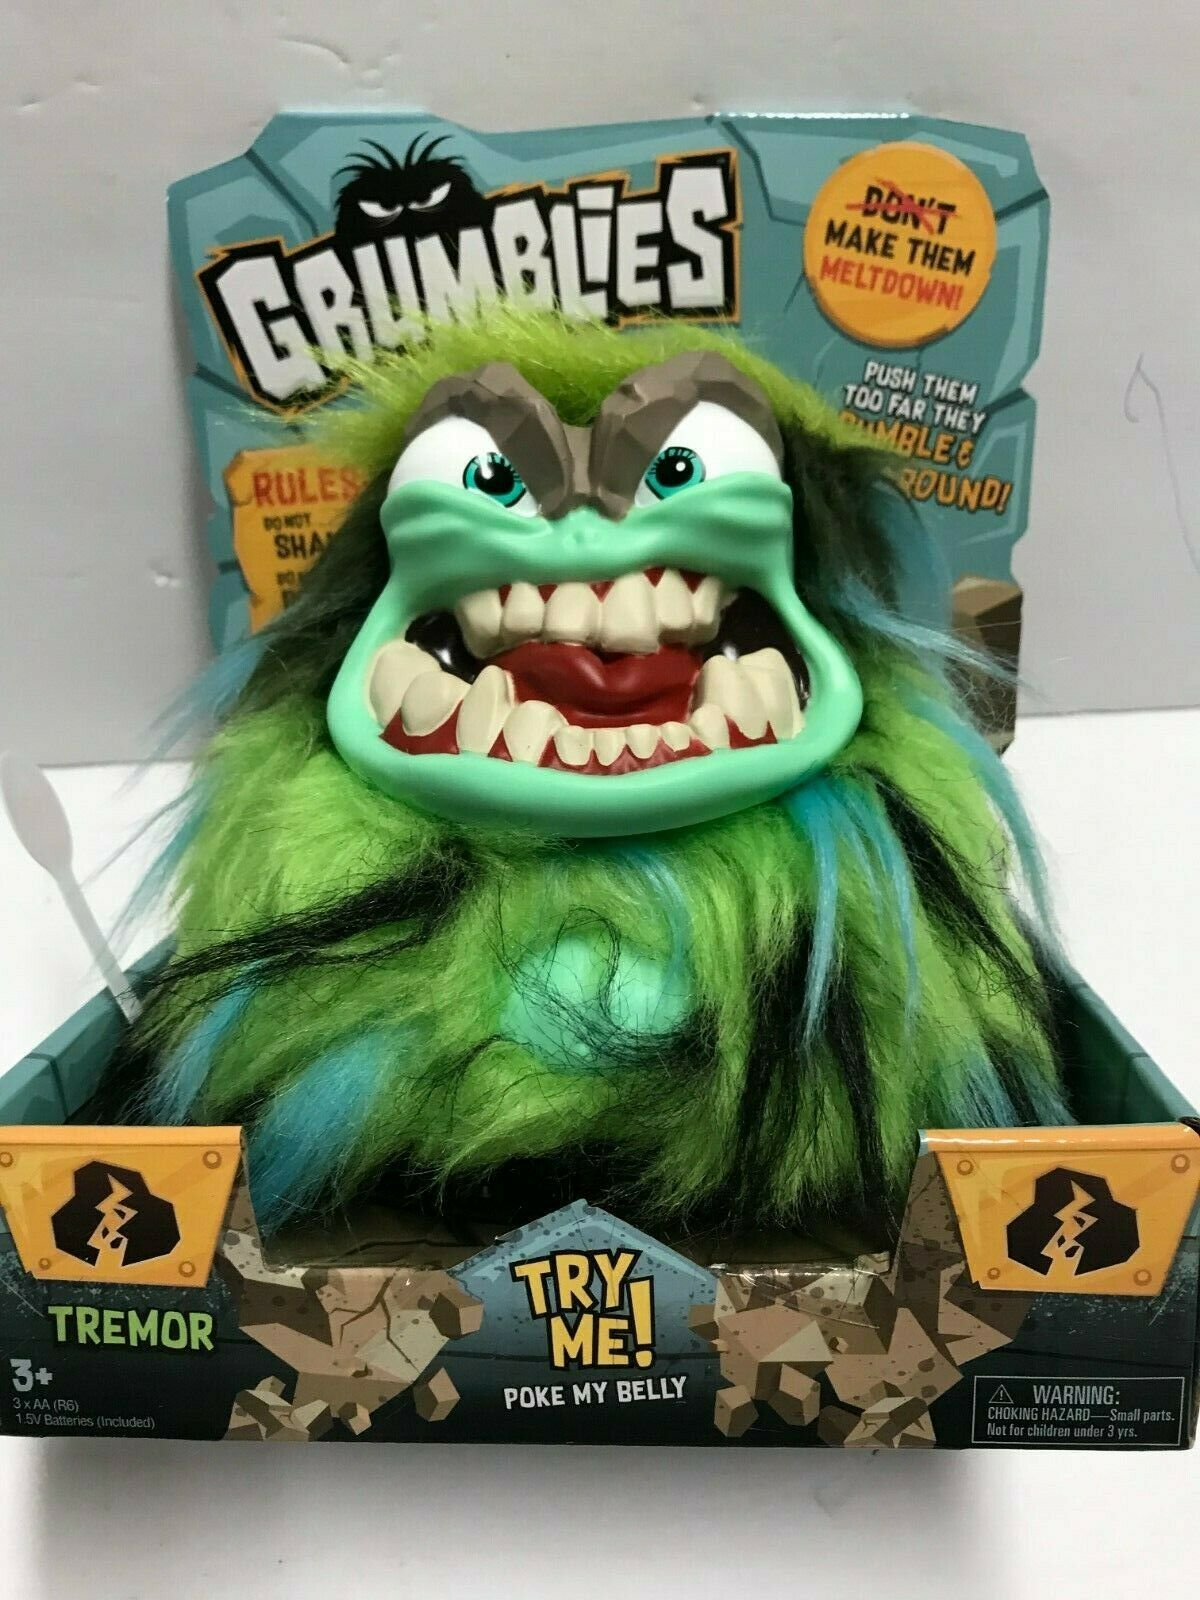 Grumblies Tremor Green Interactive Toy New in Box